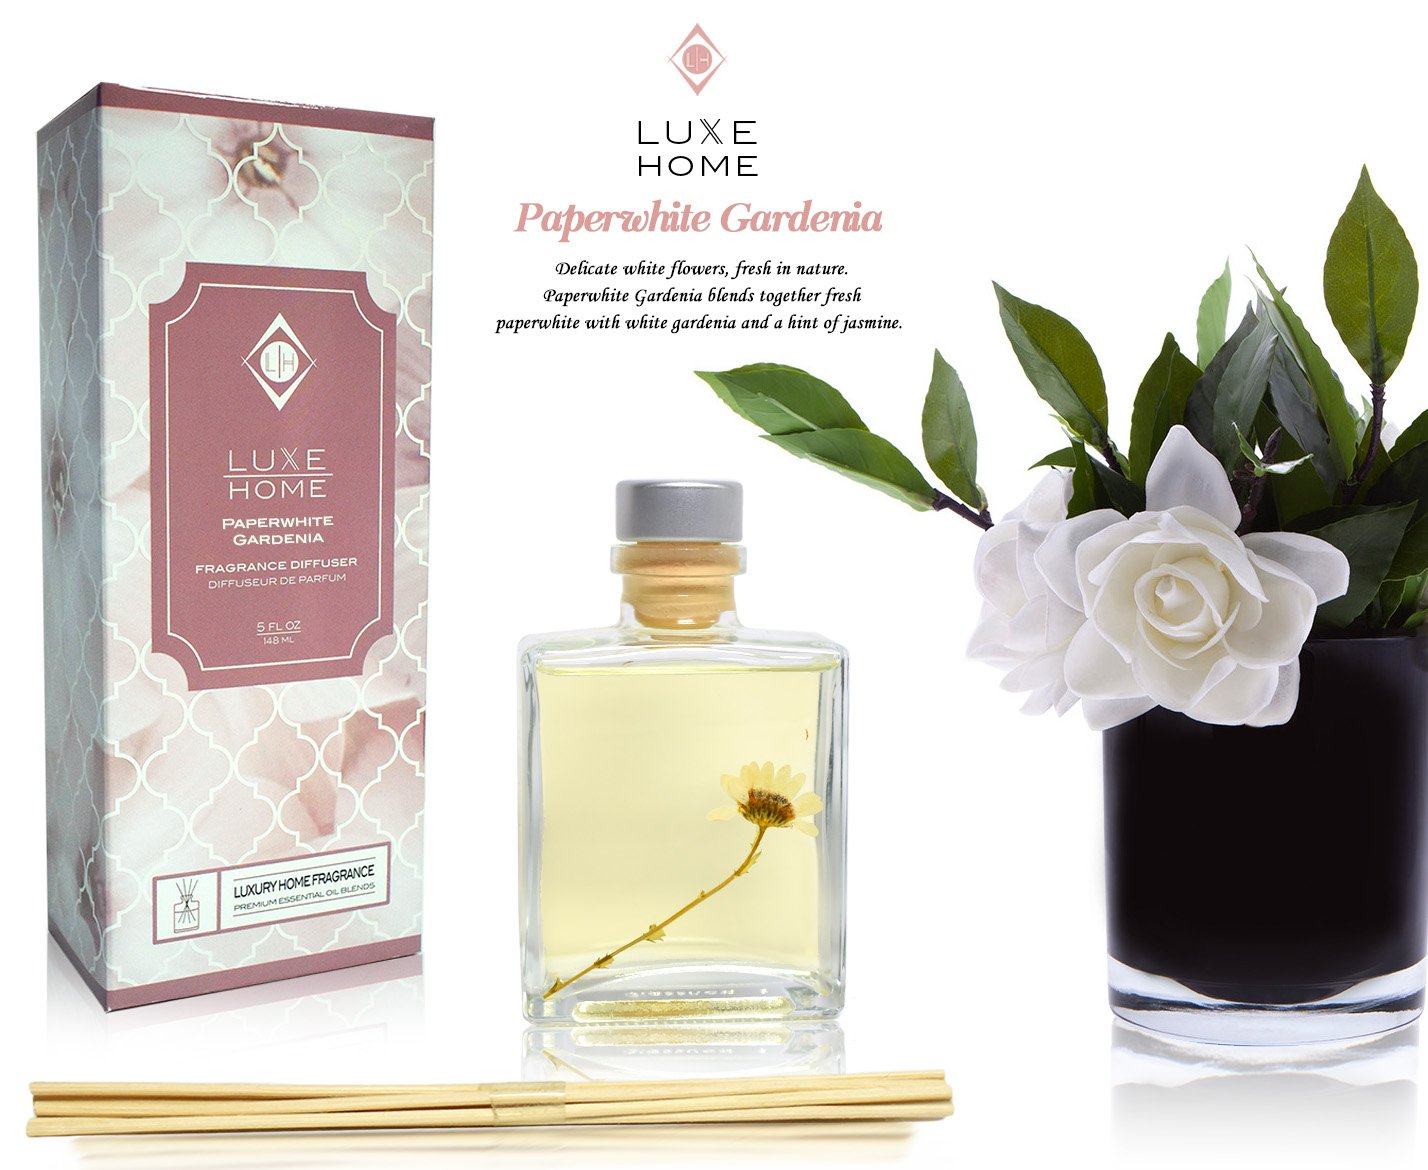 Amazon luxe home paperwhite gardenia essential oil reed amazon luxe home paperwhite gardenia essential oil reed diffuser with jasmine fragrance notes beautiful home decor home scent beauty mightylinksfo